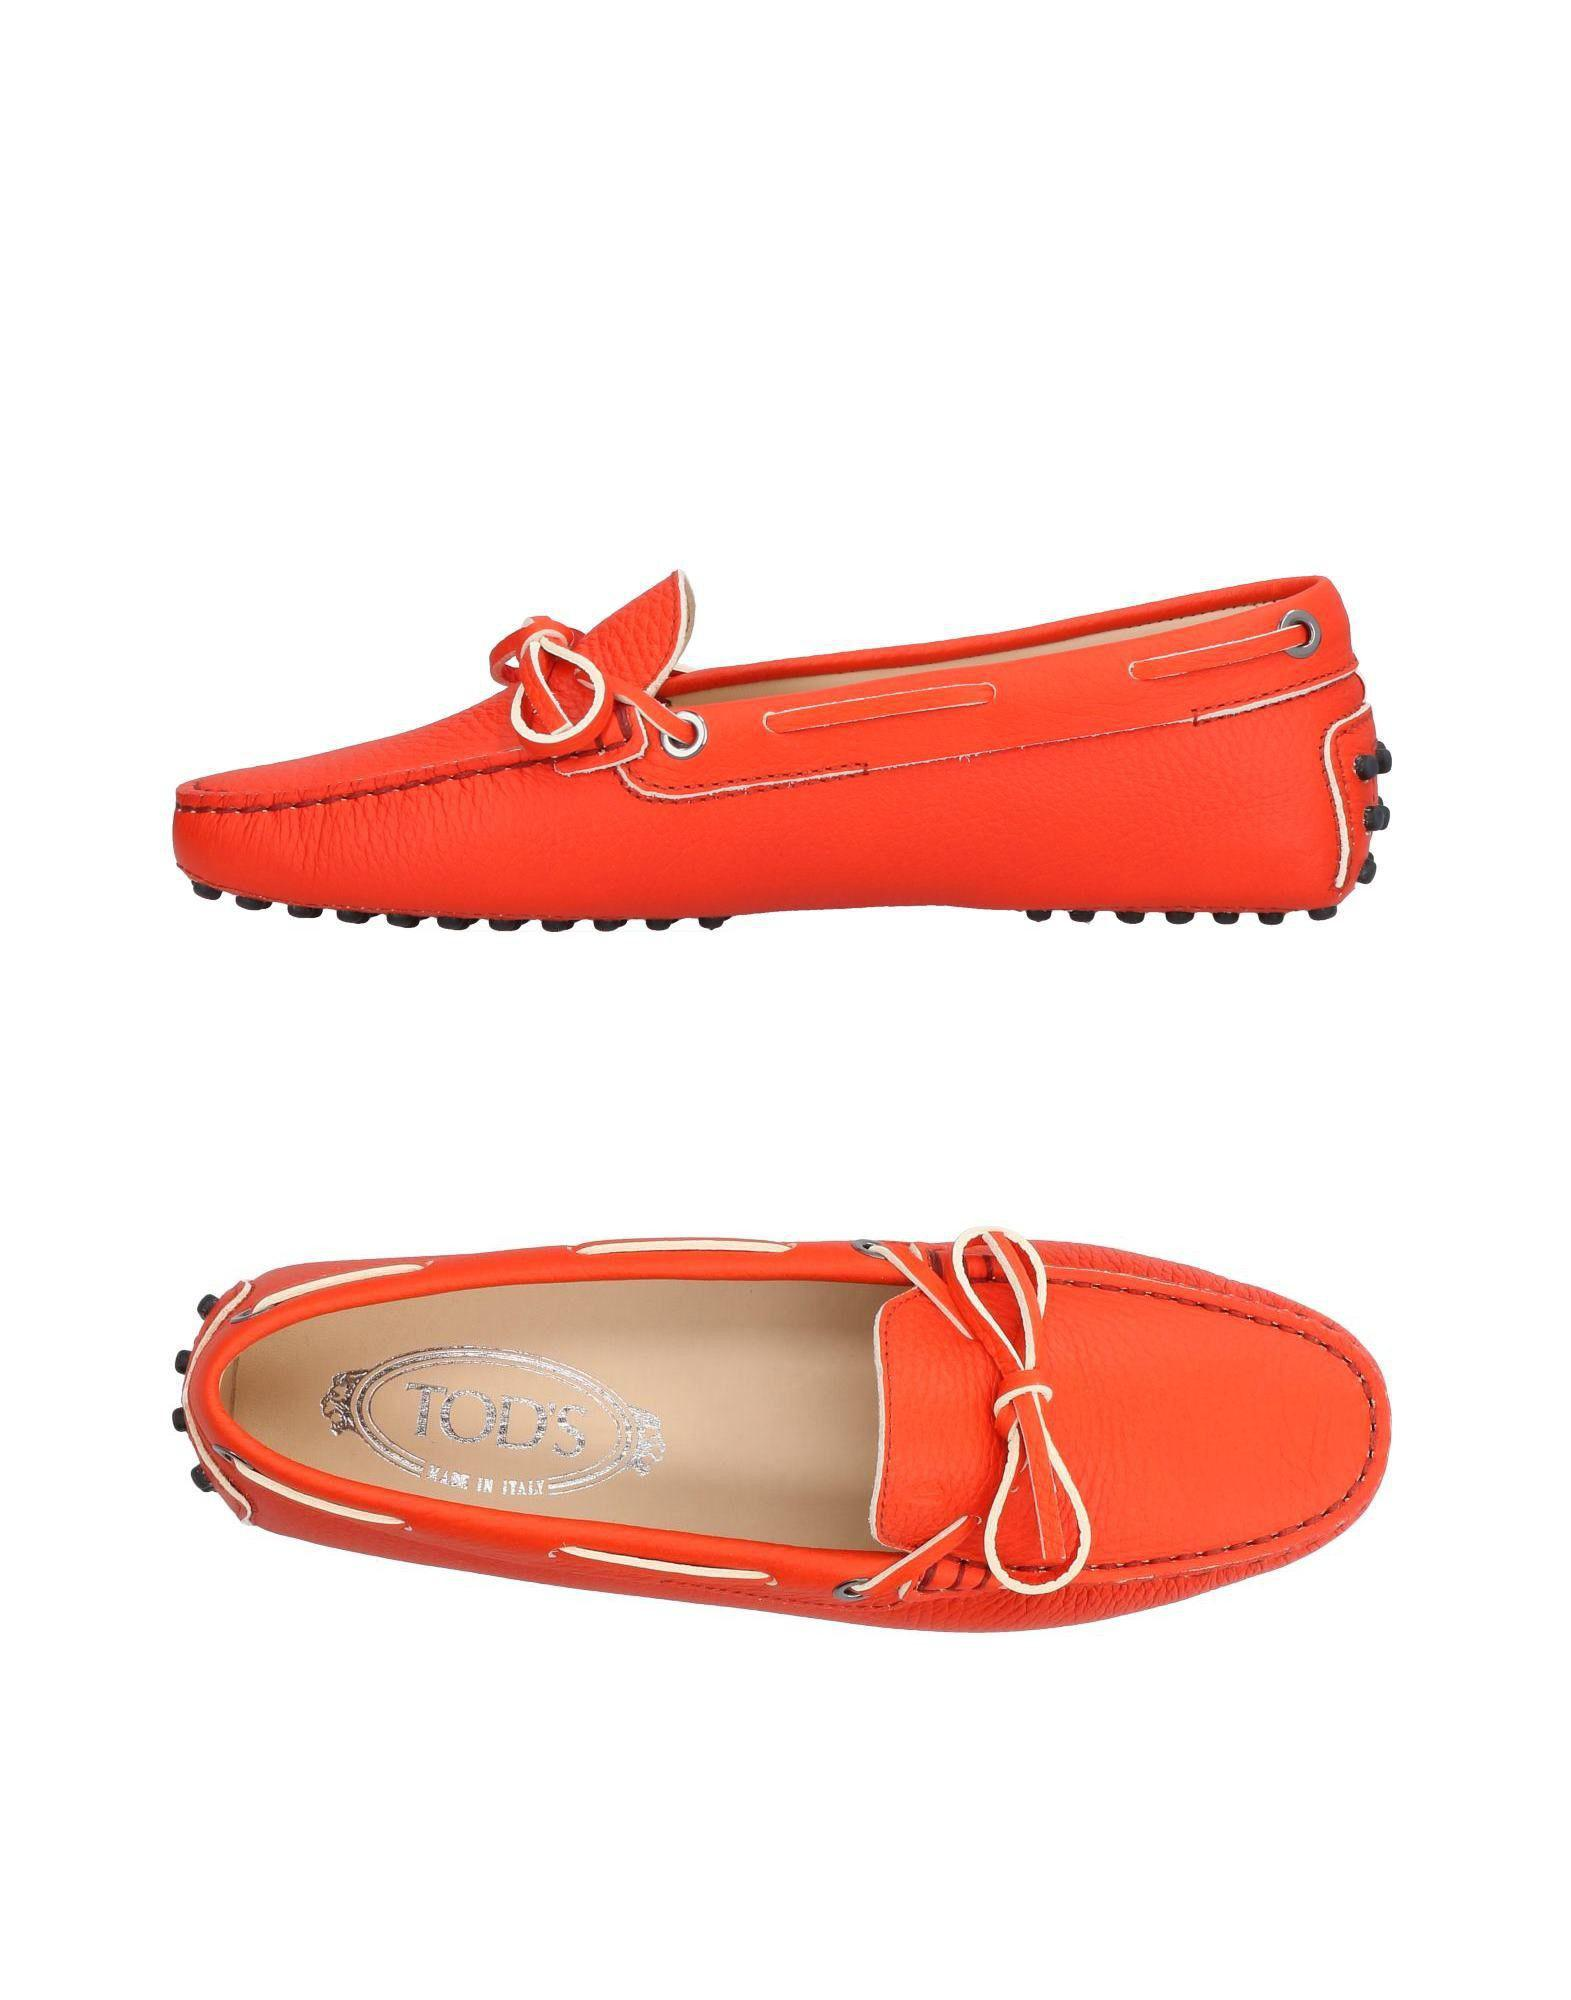 Lyst - Tod s Loafer in Red - Save 6% 0a50e115f7ebe